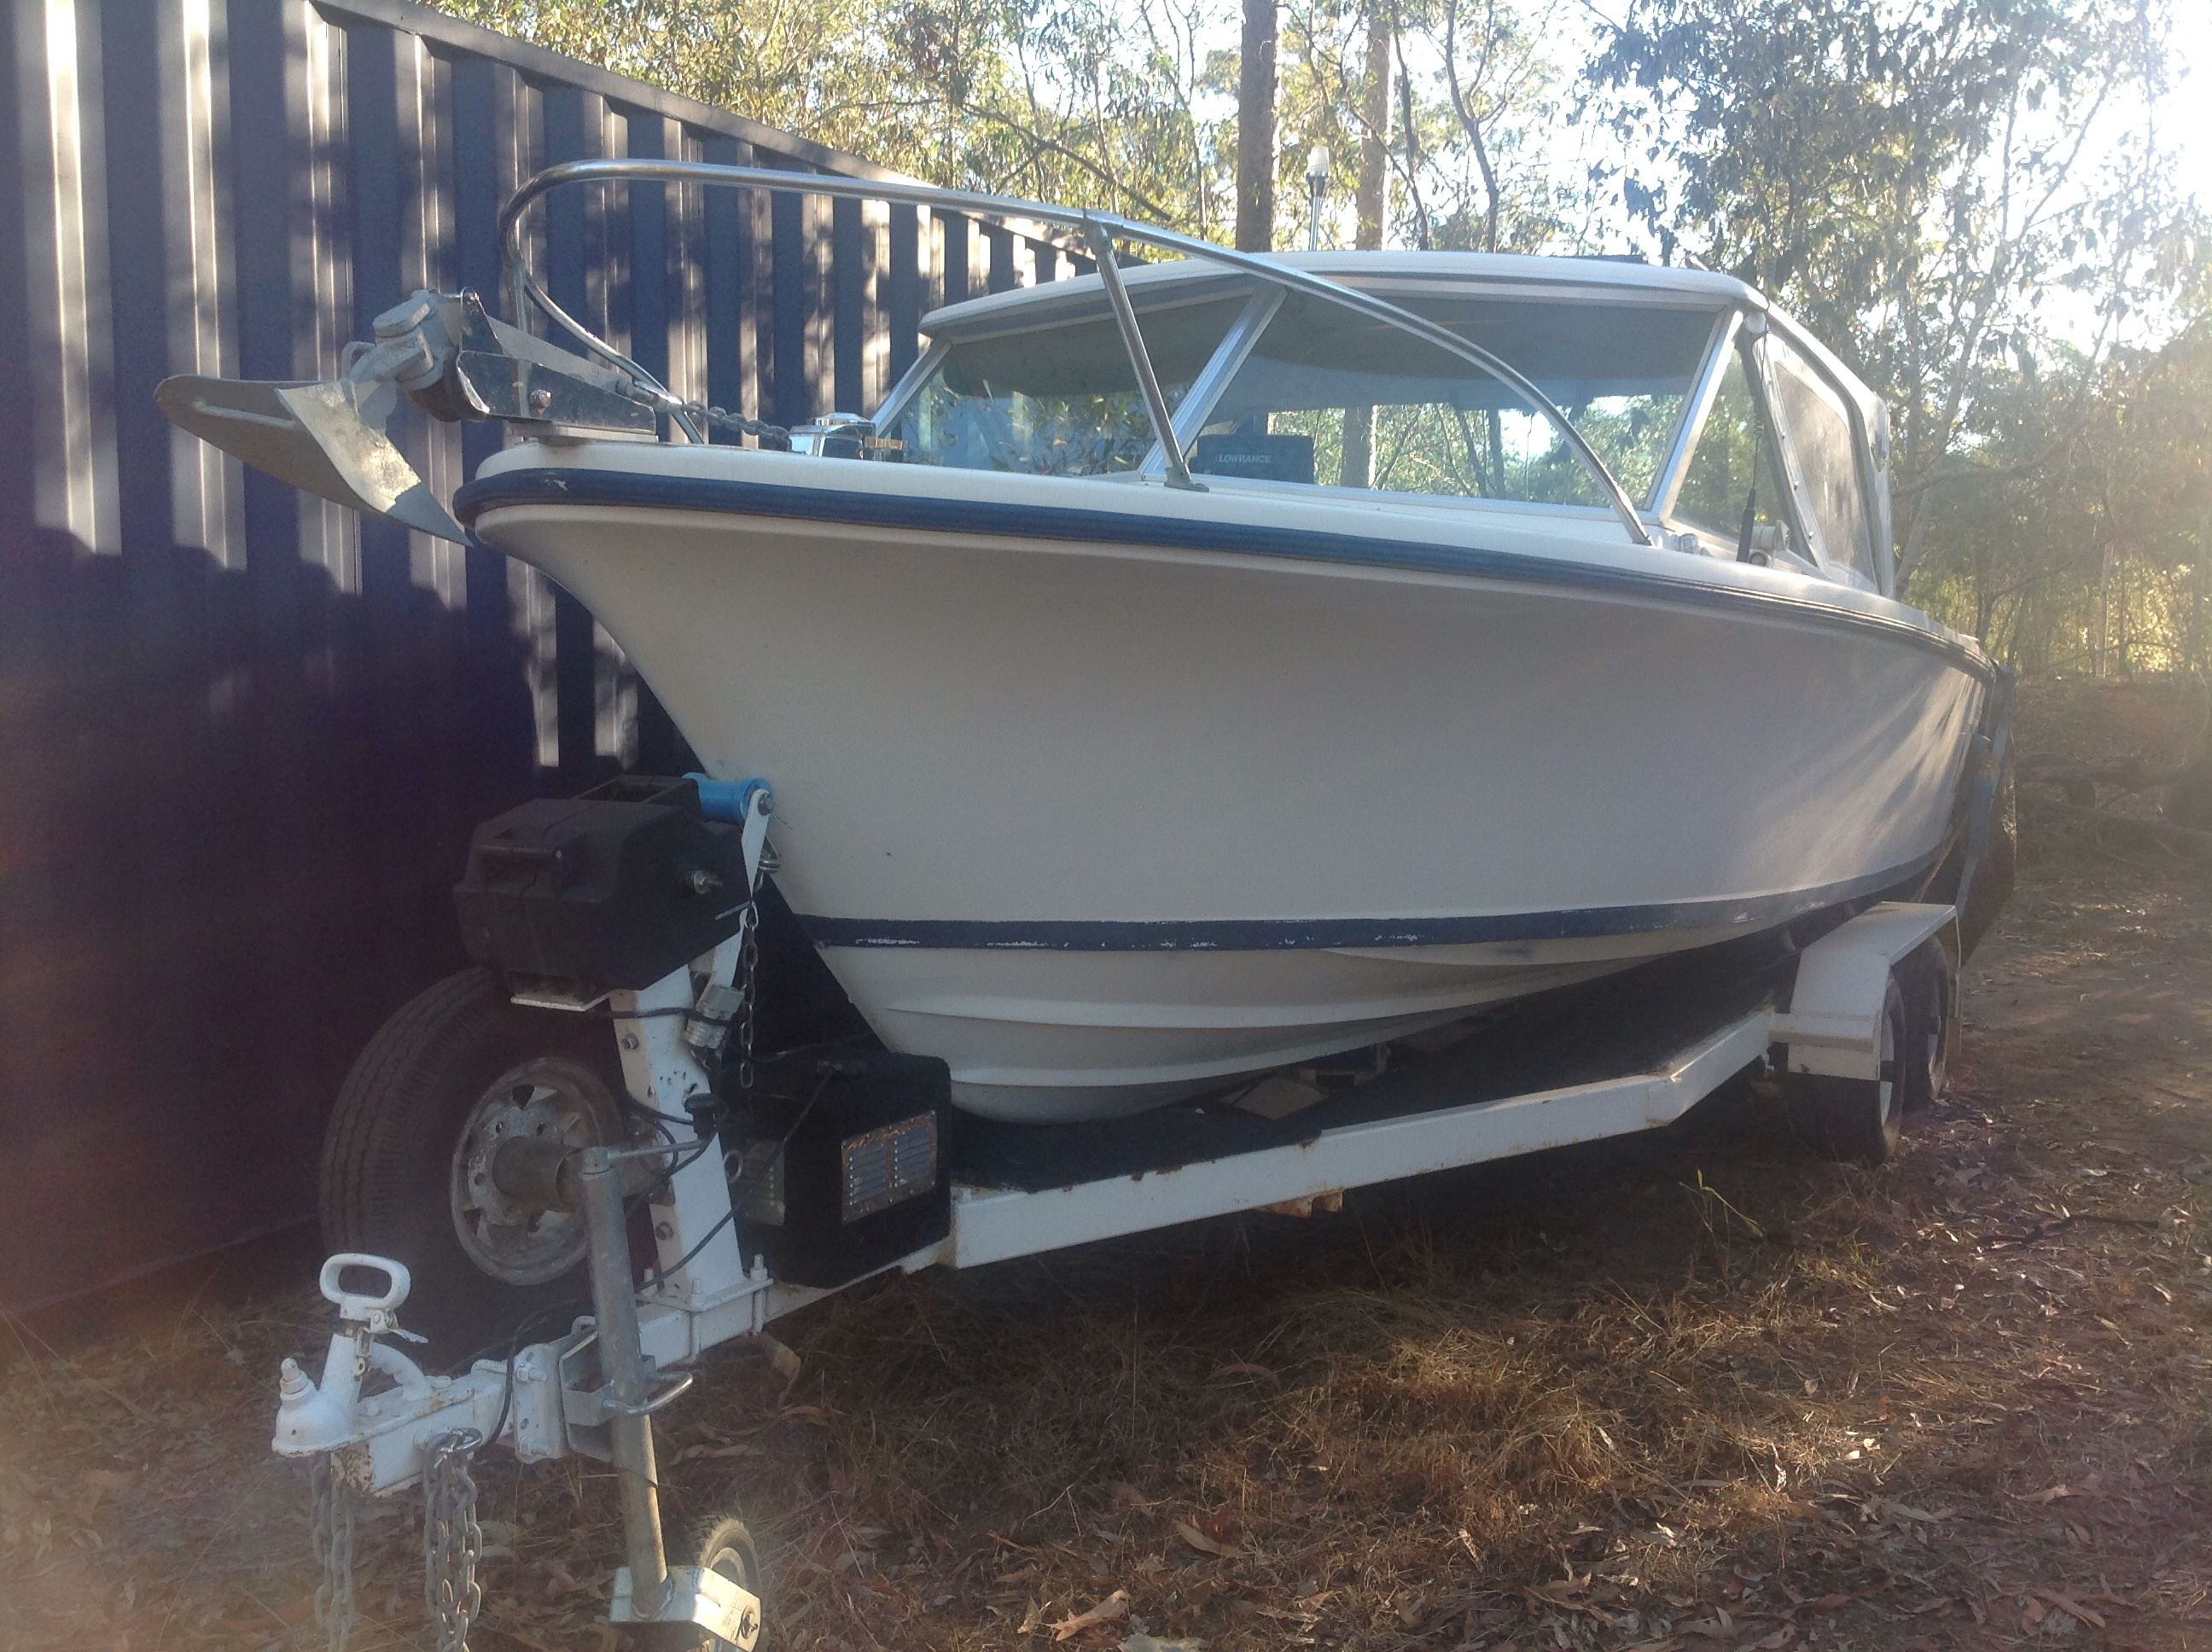 18ft boat, 200hp motor, trailer, all ex cond Laidley area.